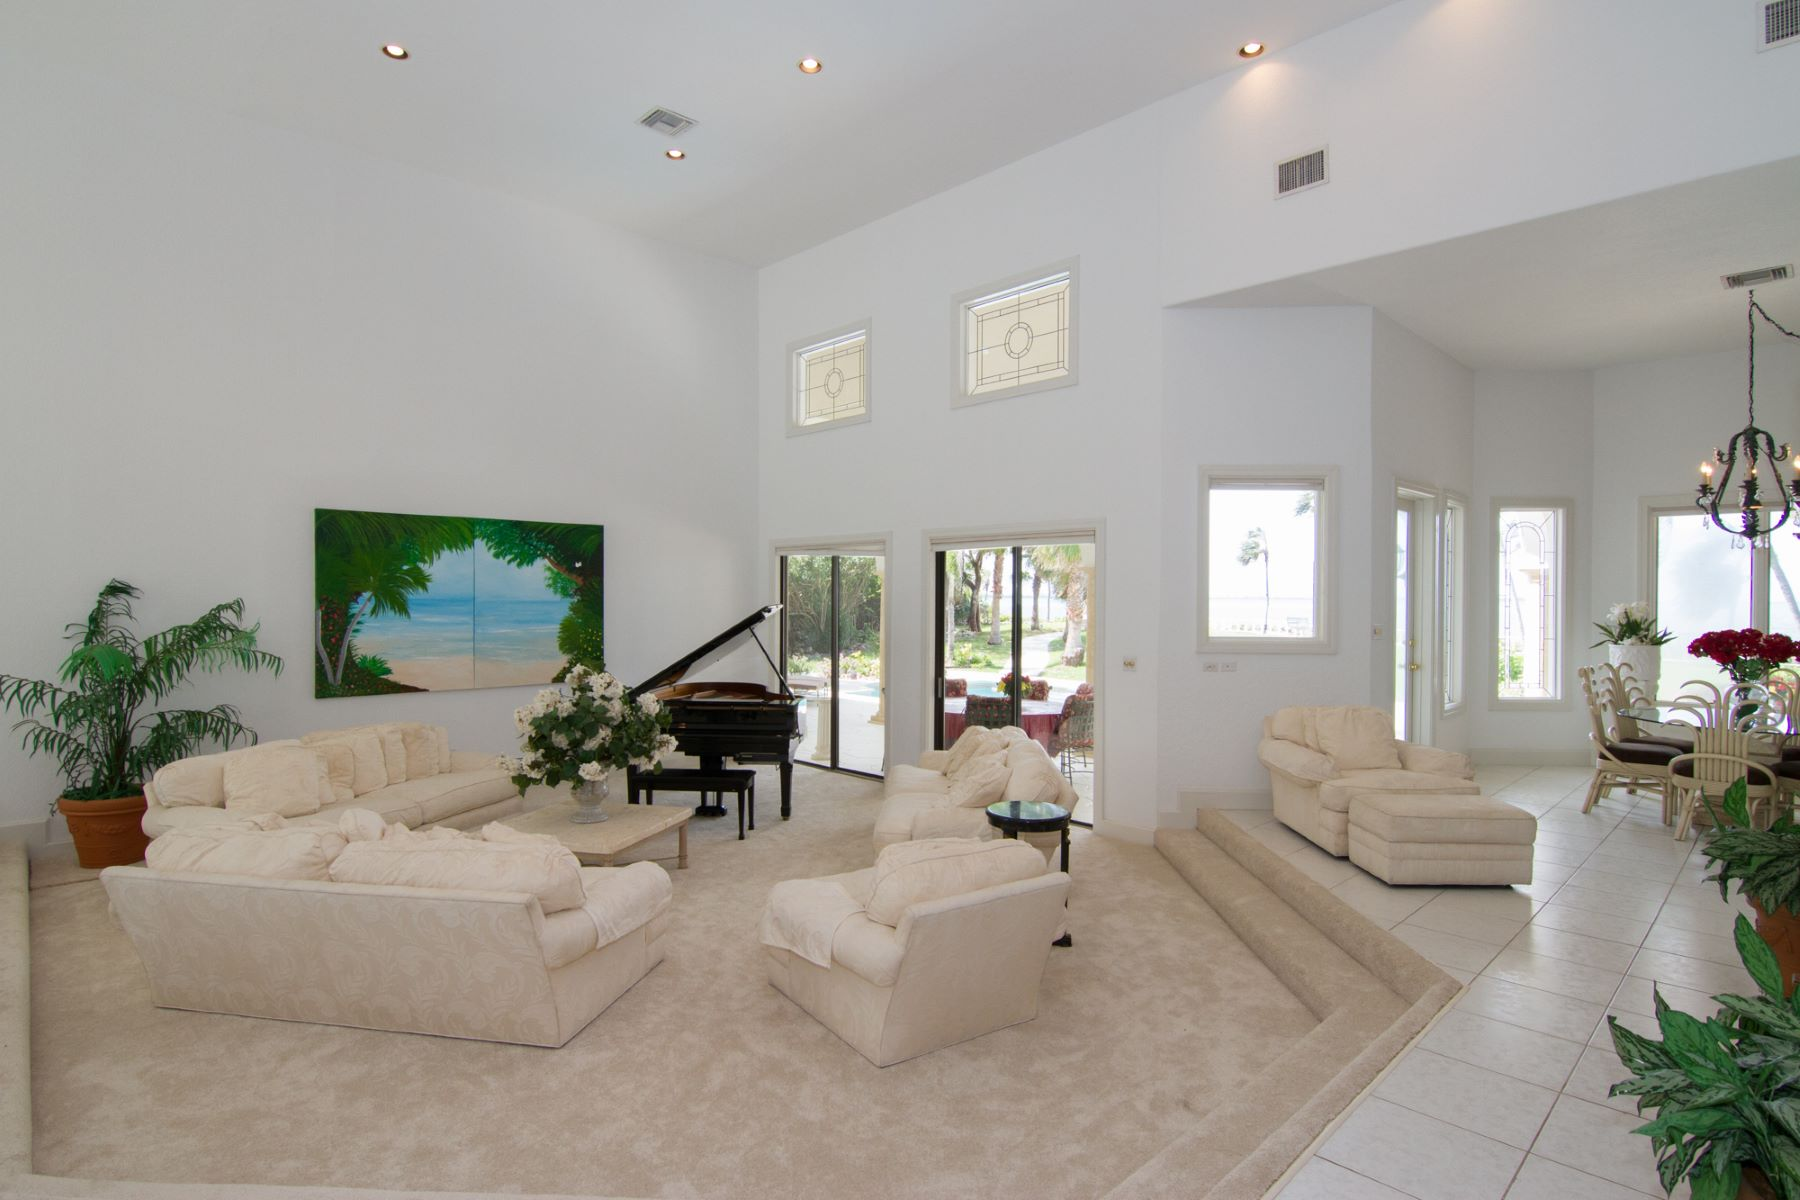 Single Family Home for Rent at Luxurious ocean front villa Other Cayman Islands, Cayman Islands